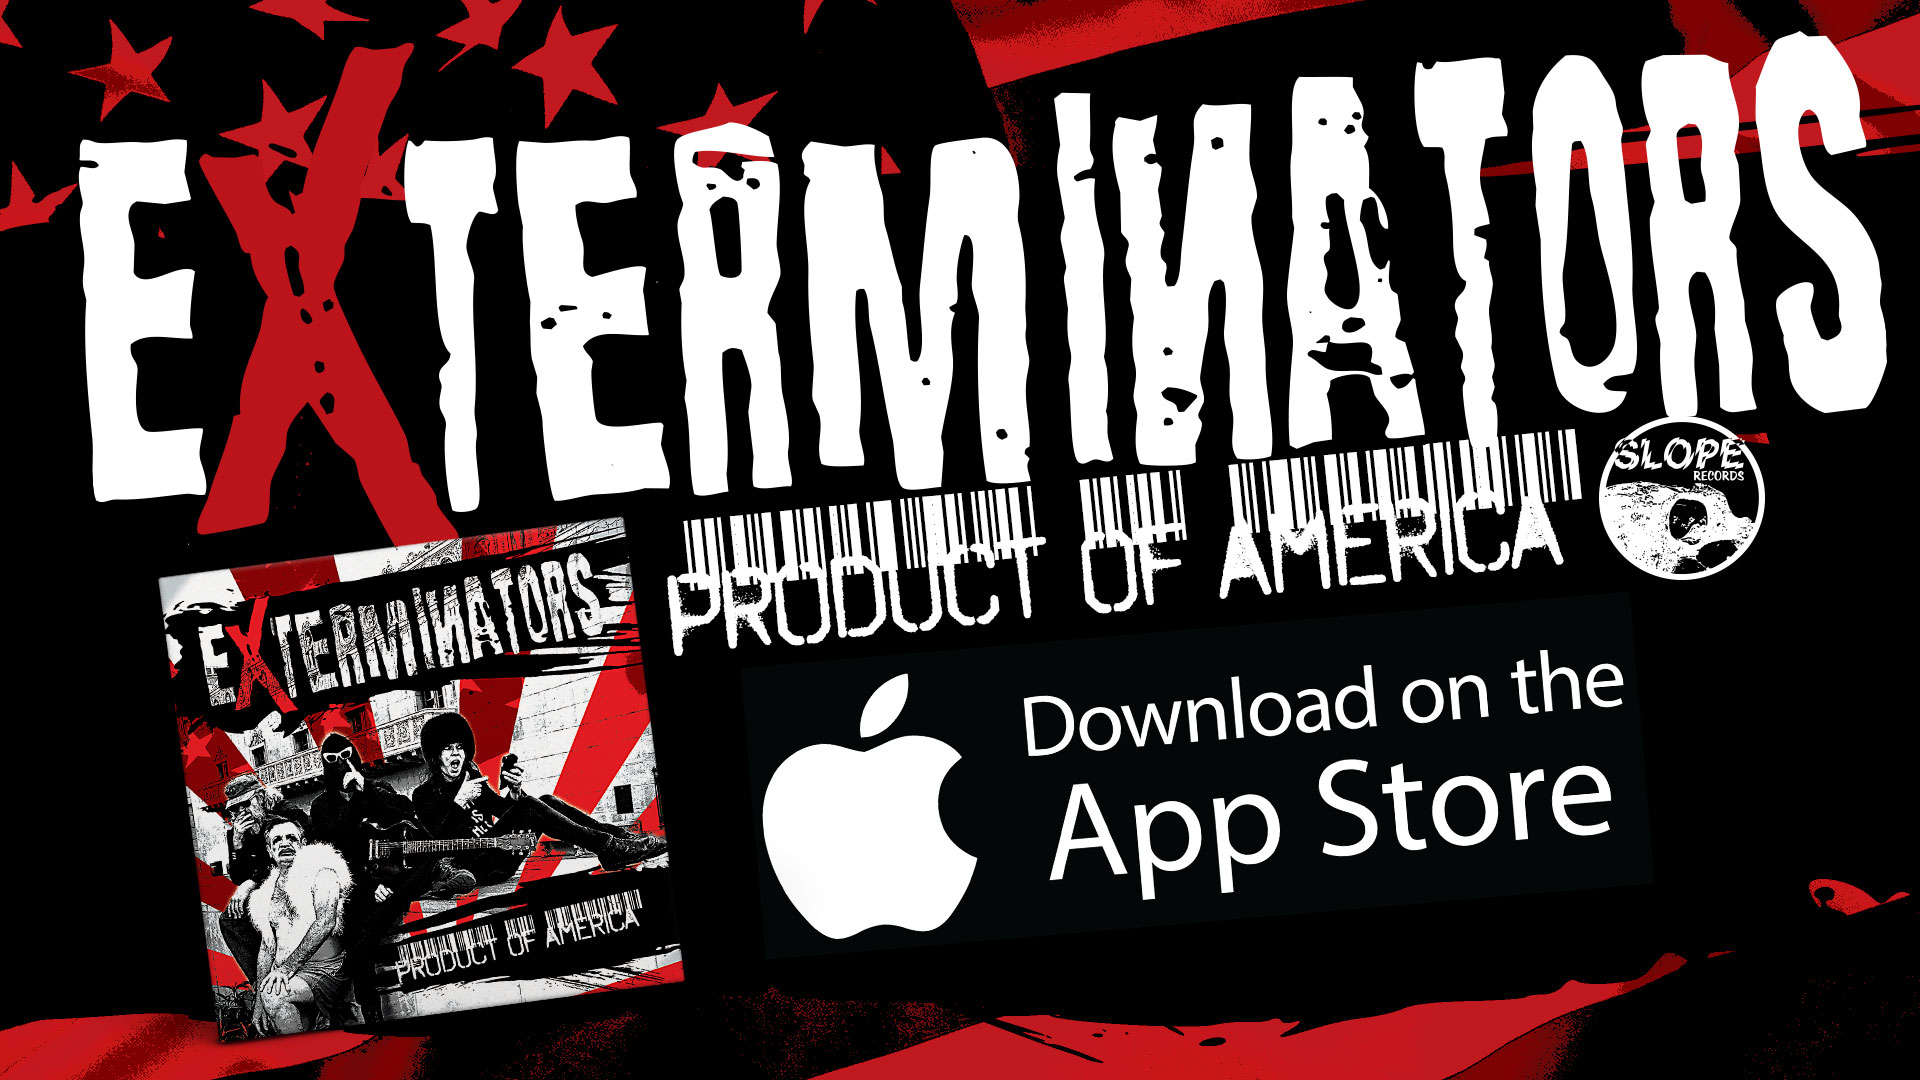 Exterminators - Product Of America available on iTunes